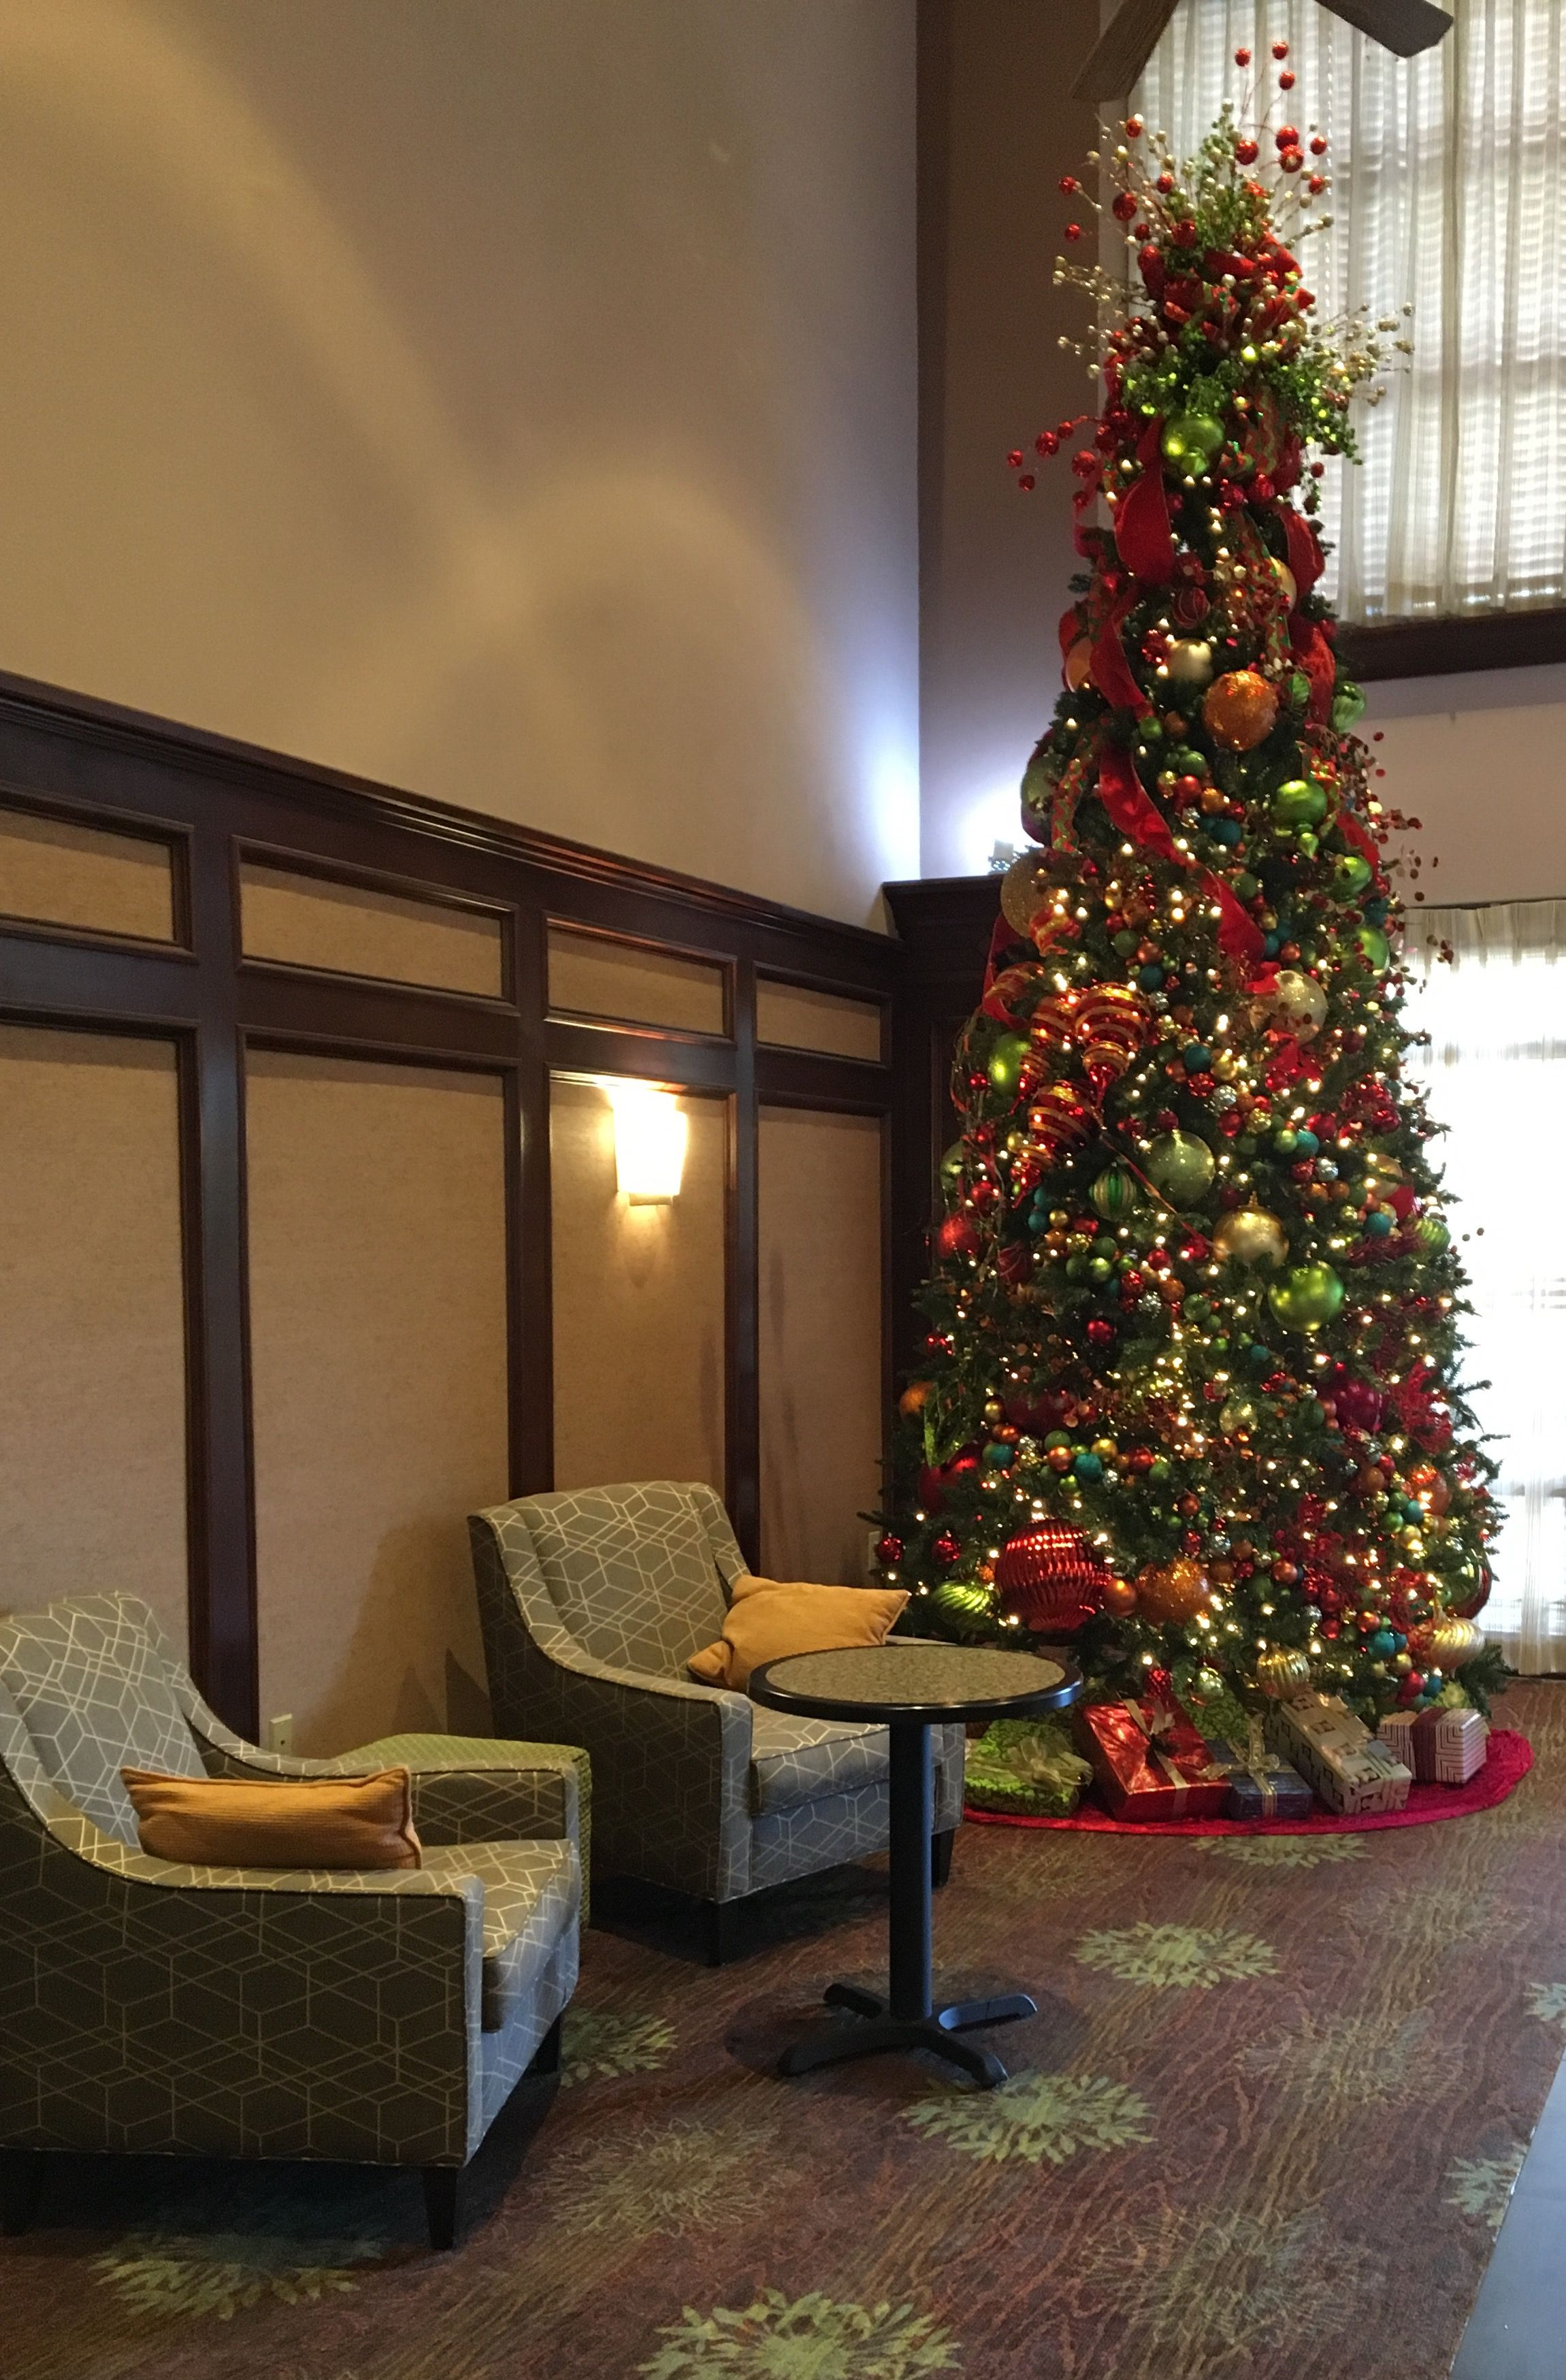 Pin by Becky Pruitt on Hotel christmas